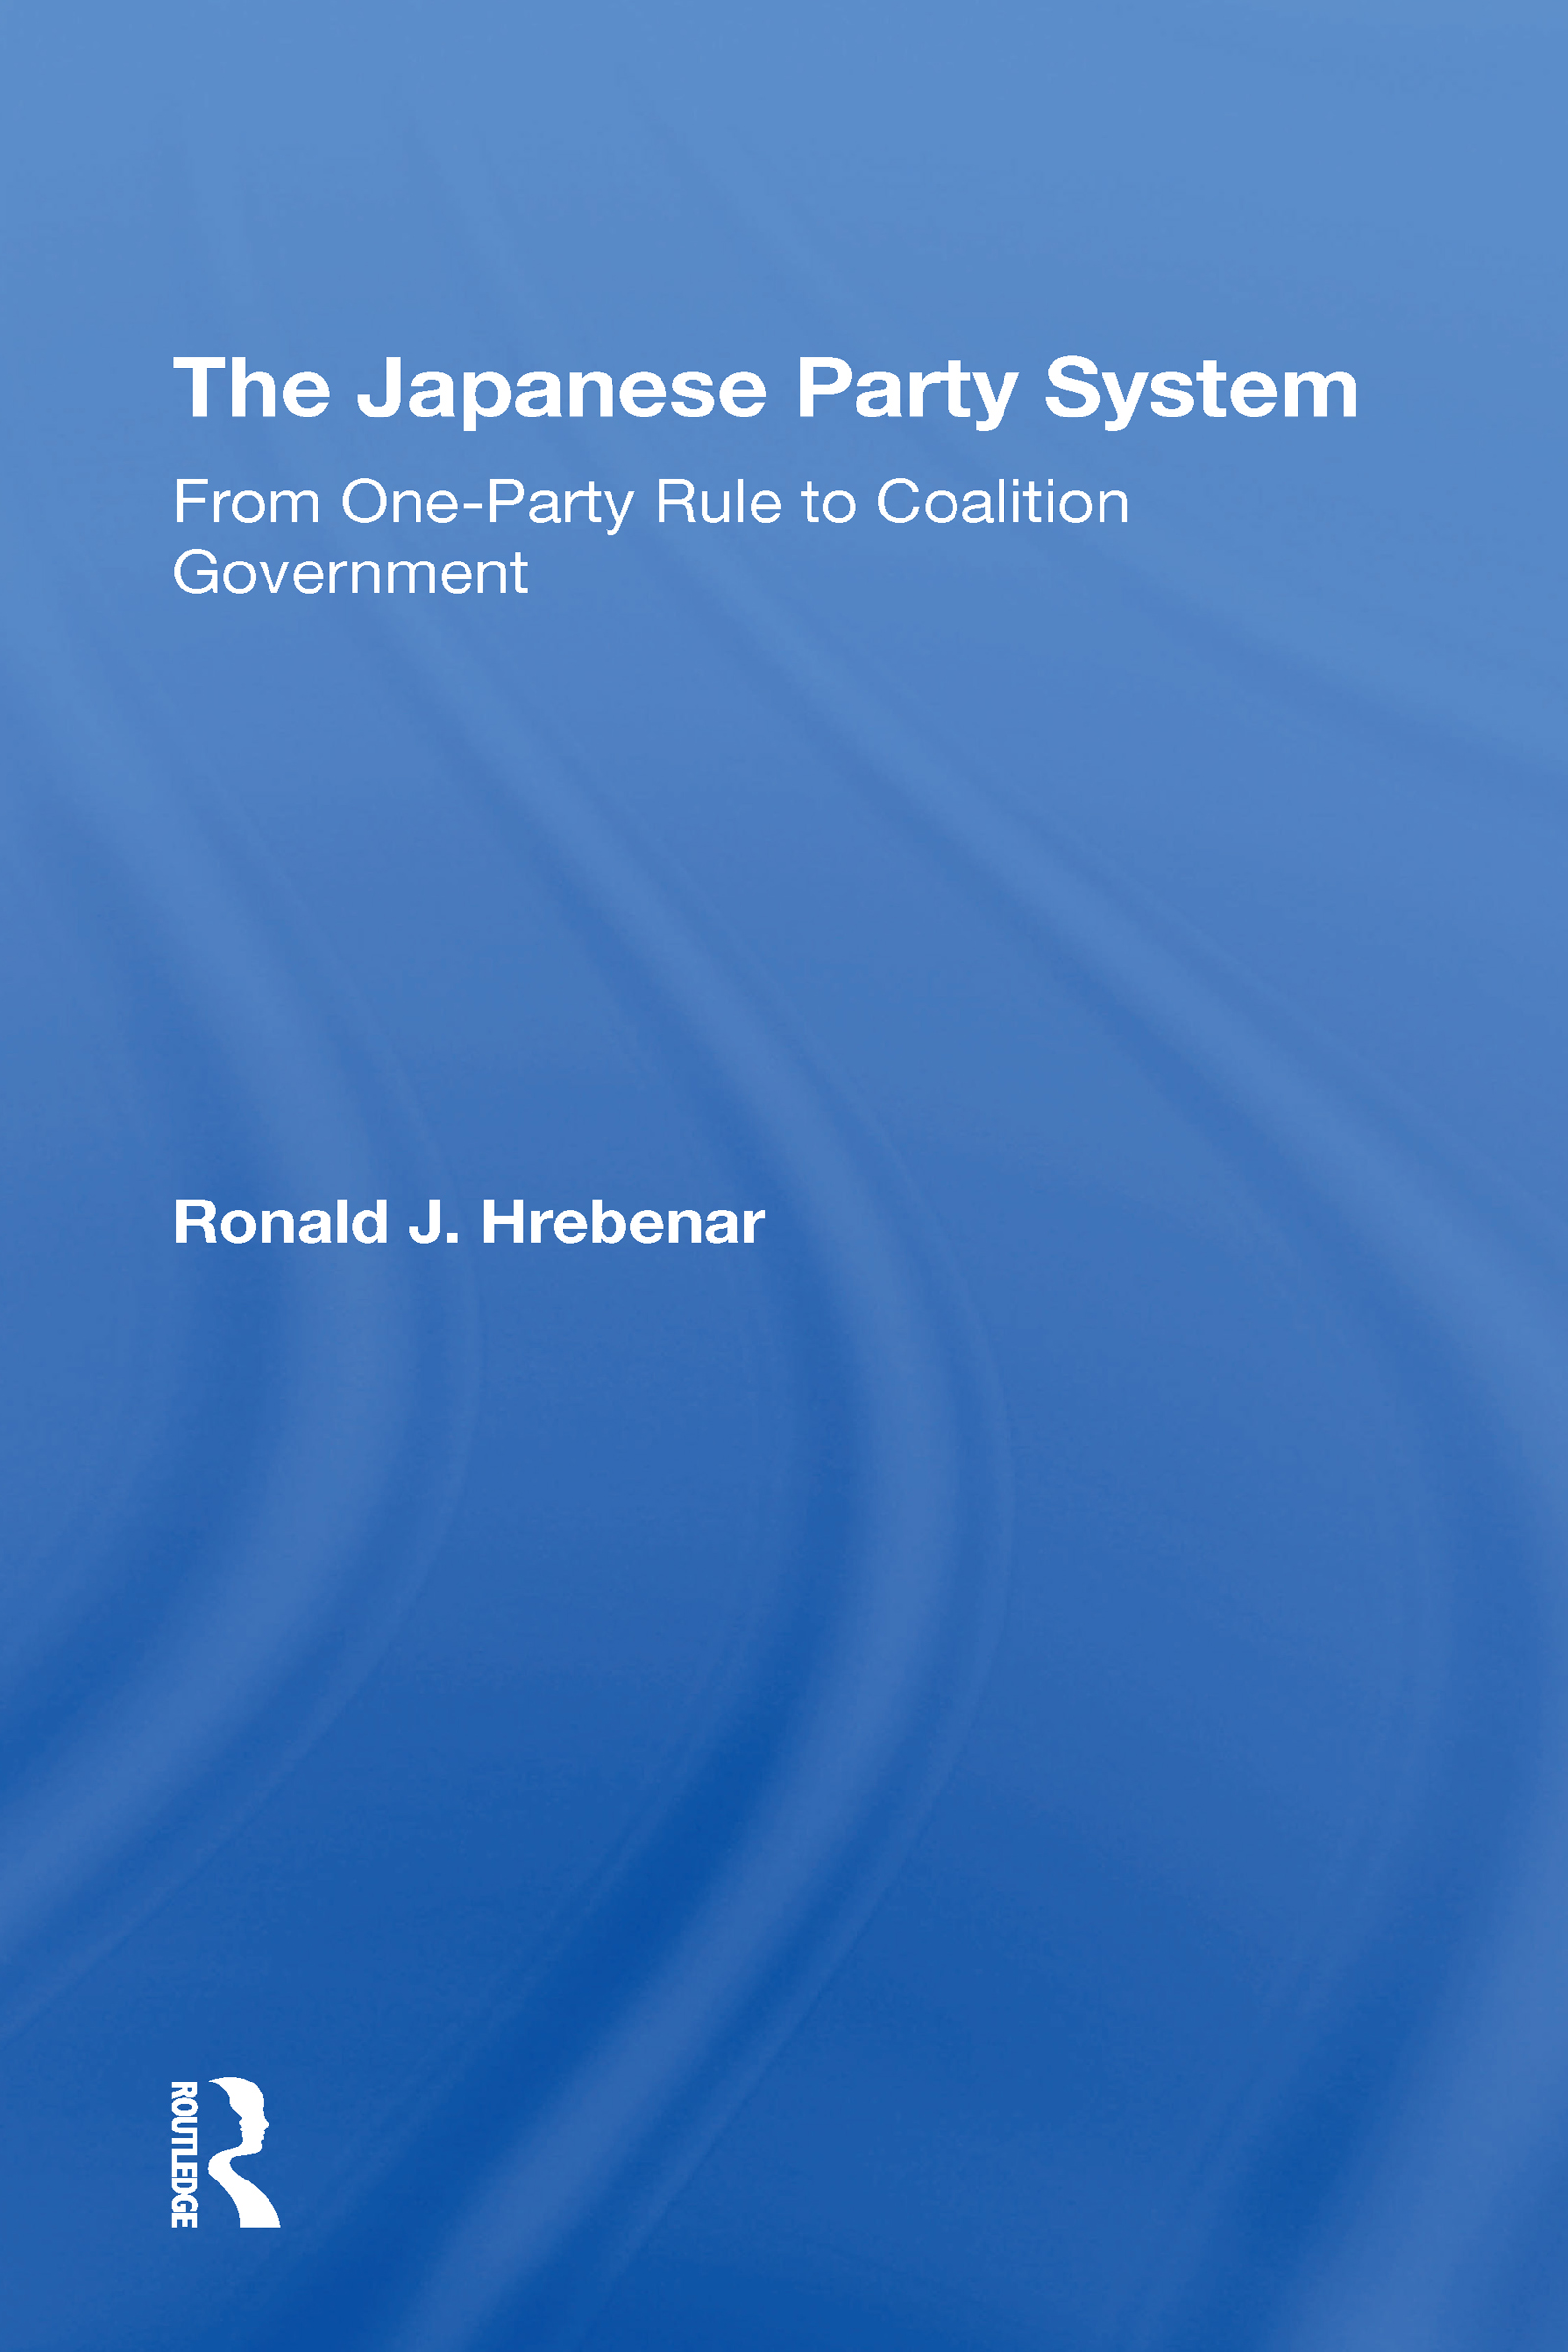 The Japanese Party System